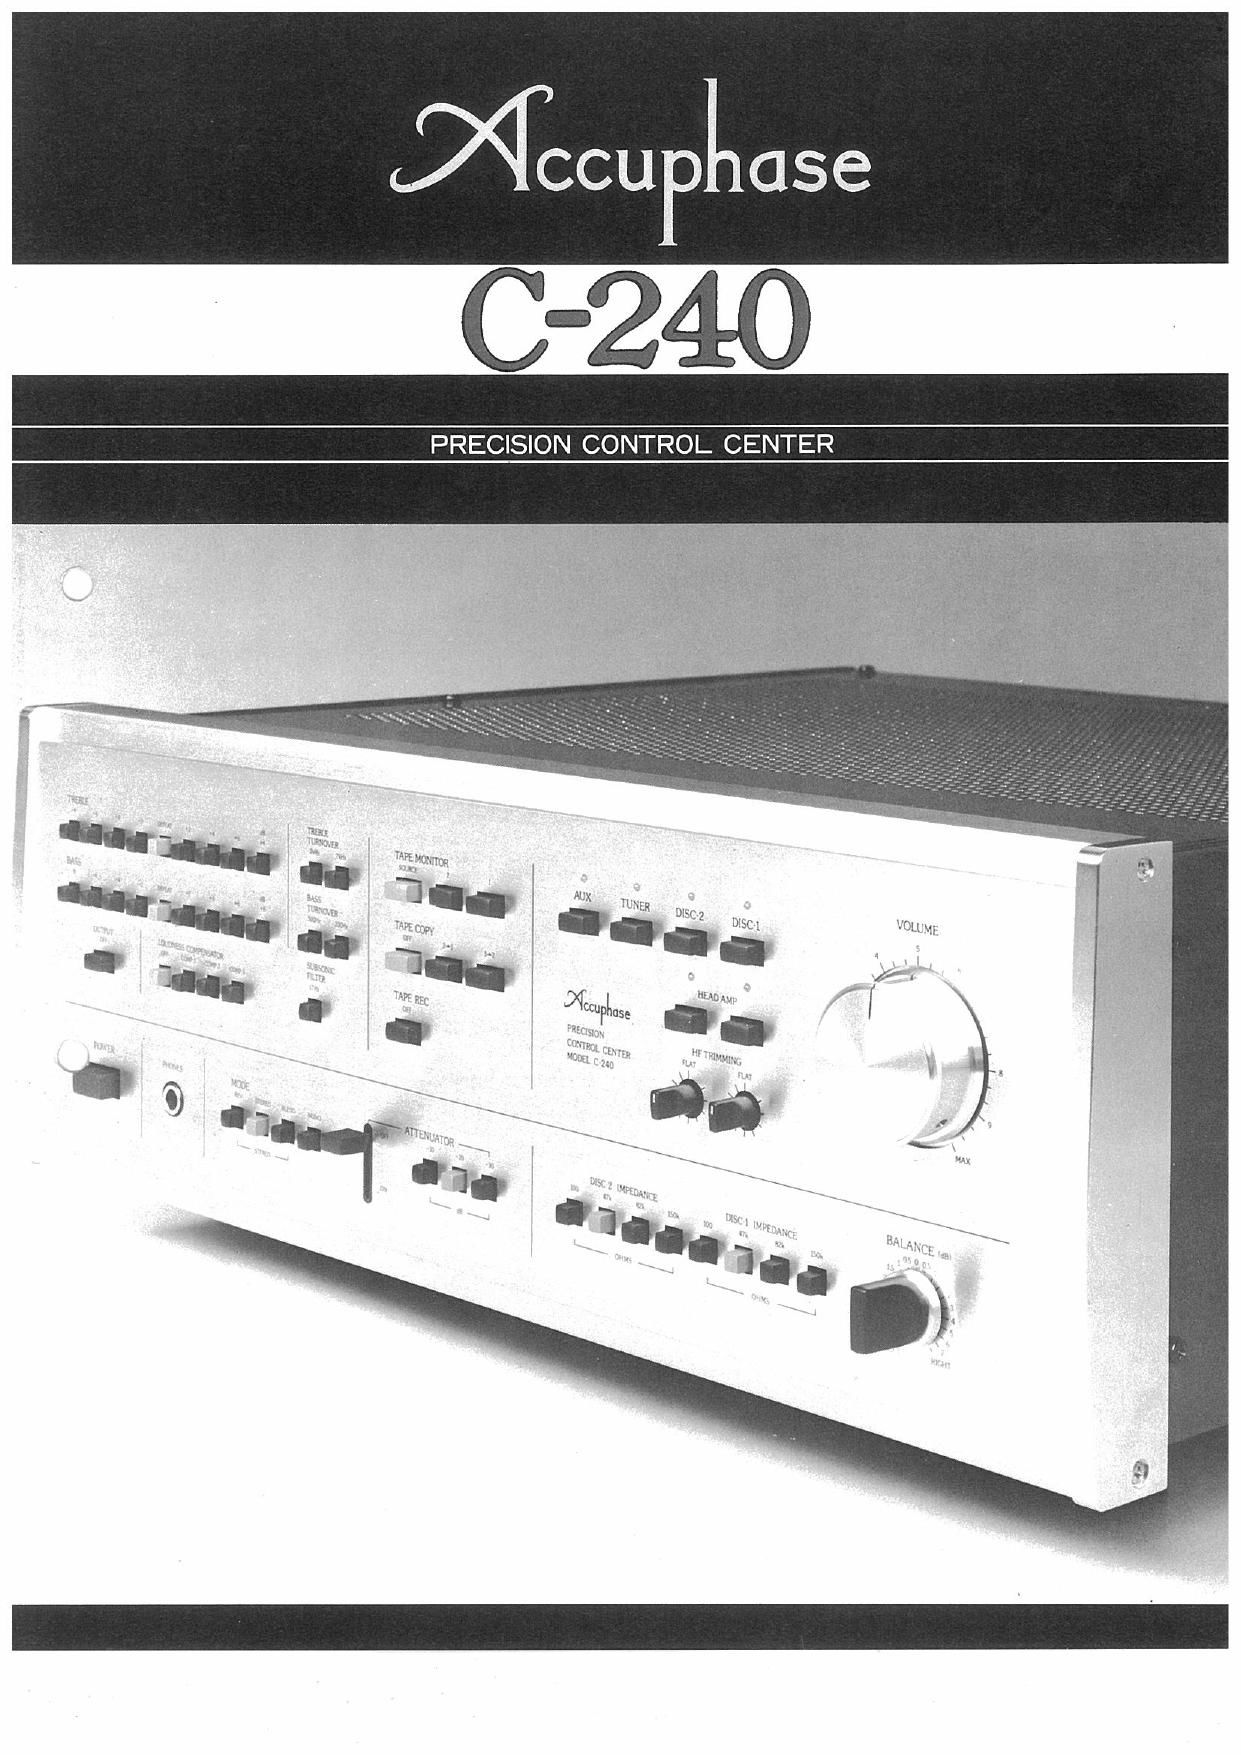 Accuphase C 240 Brochure